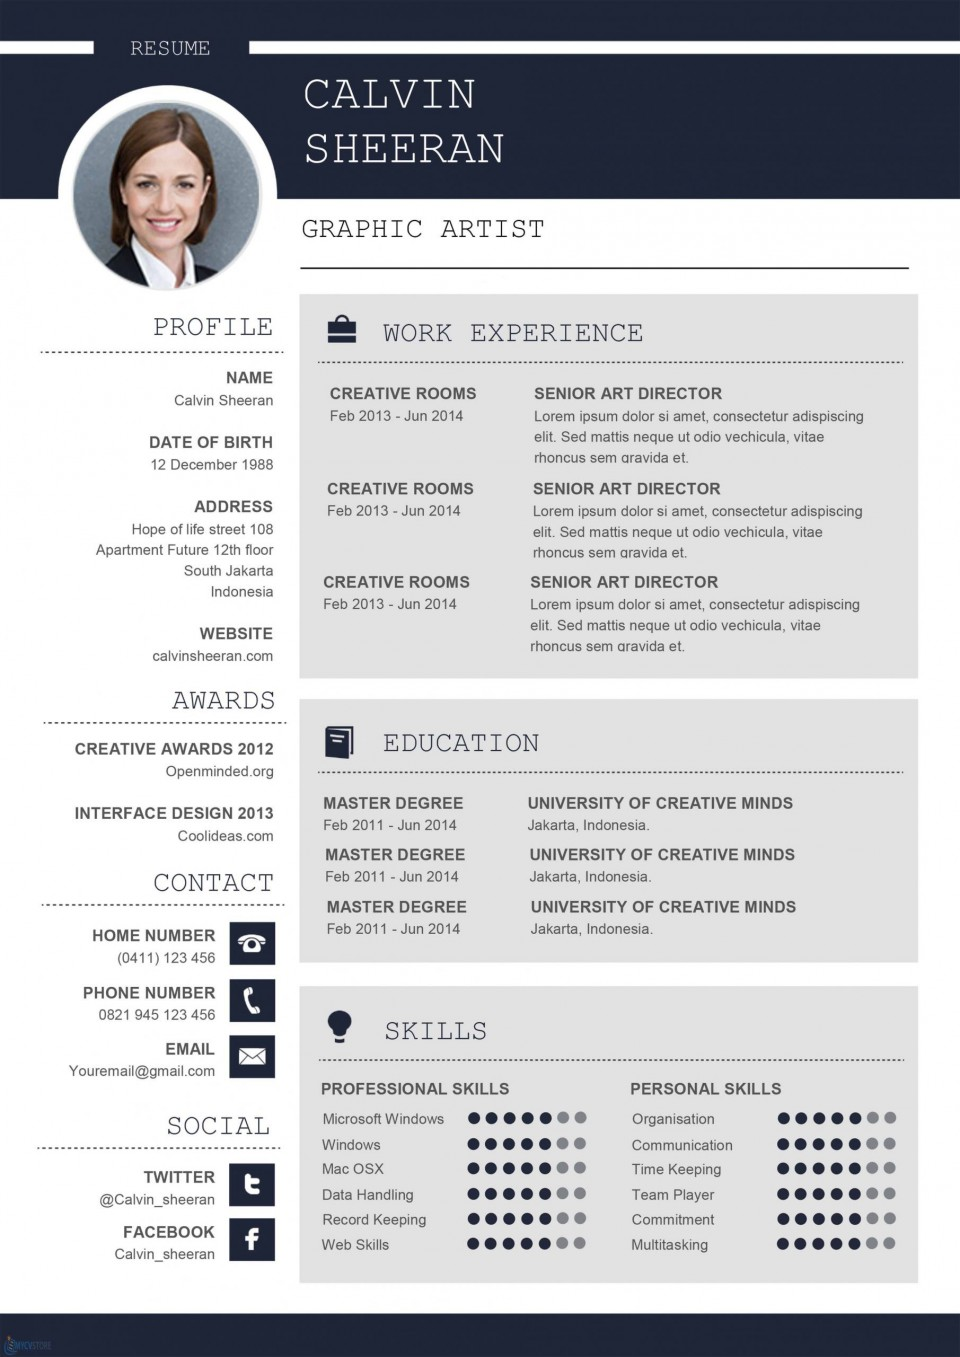 002 Incredible Resume Microsoft Word Template Picture  Cv/resume Design Tutorial With Federal Download960